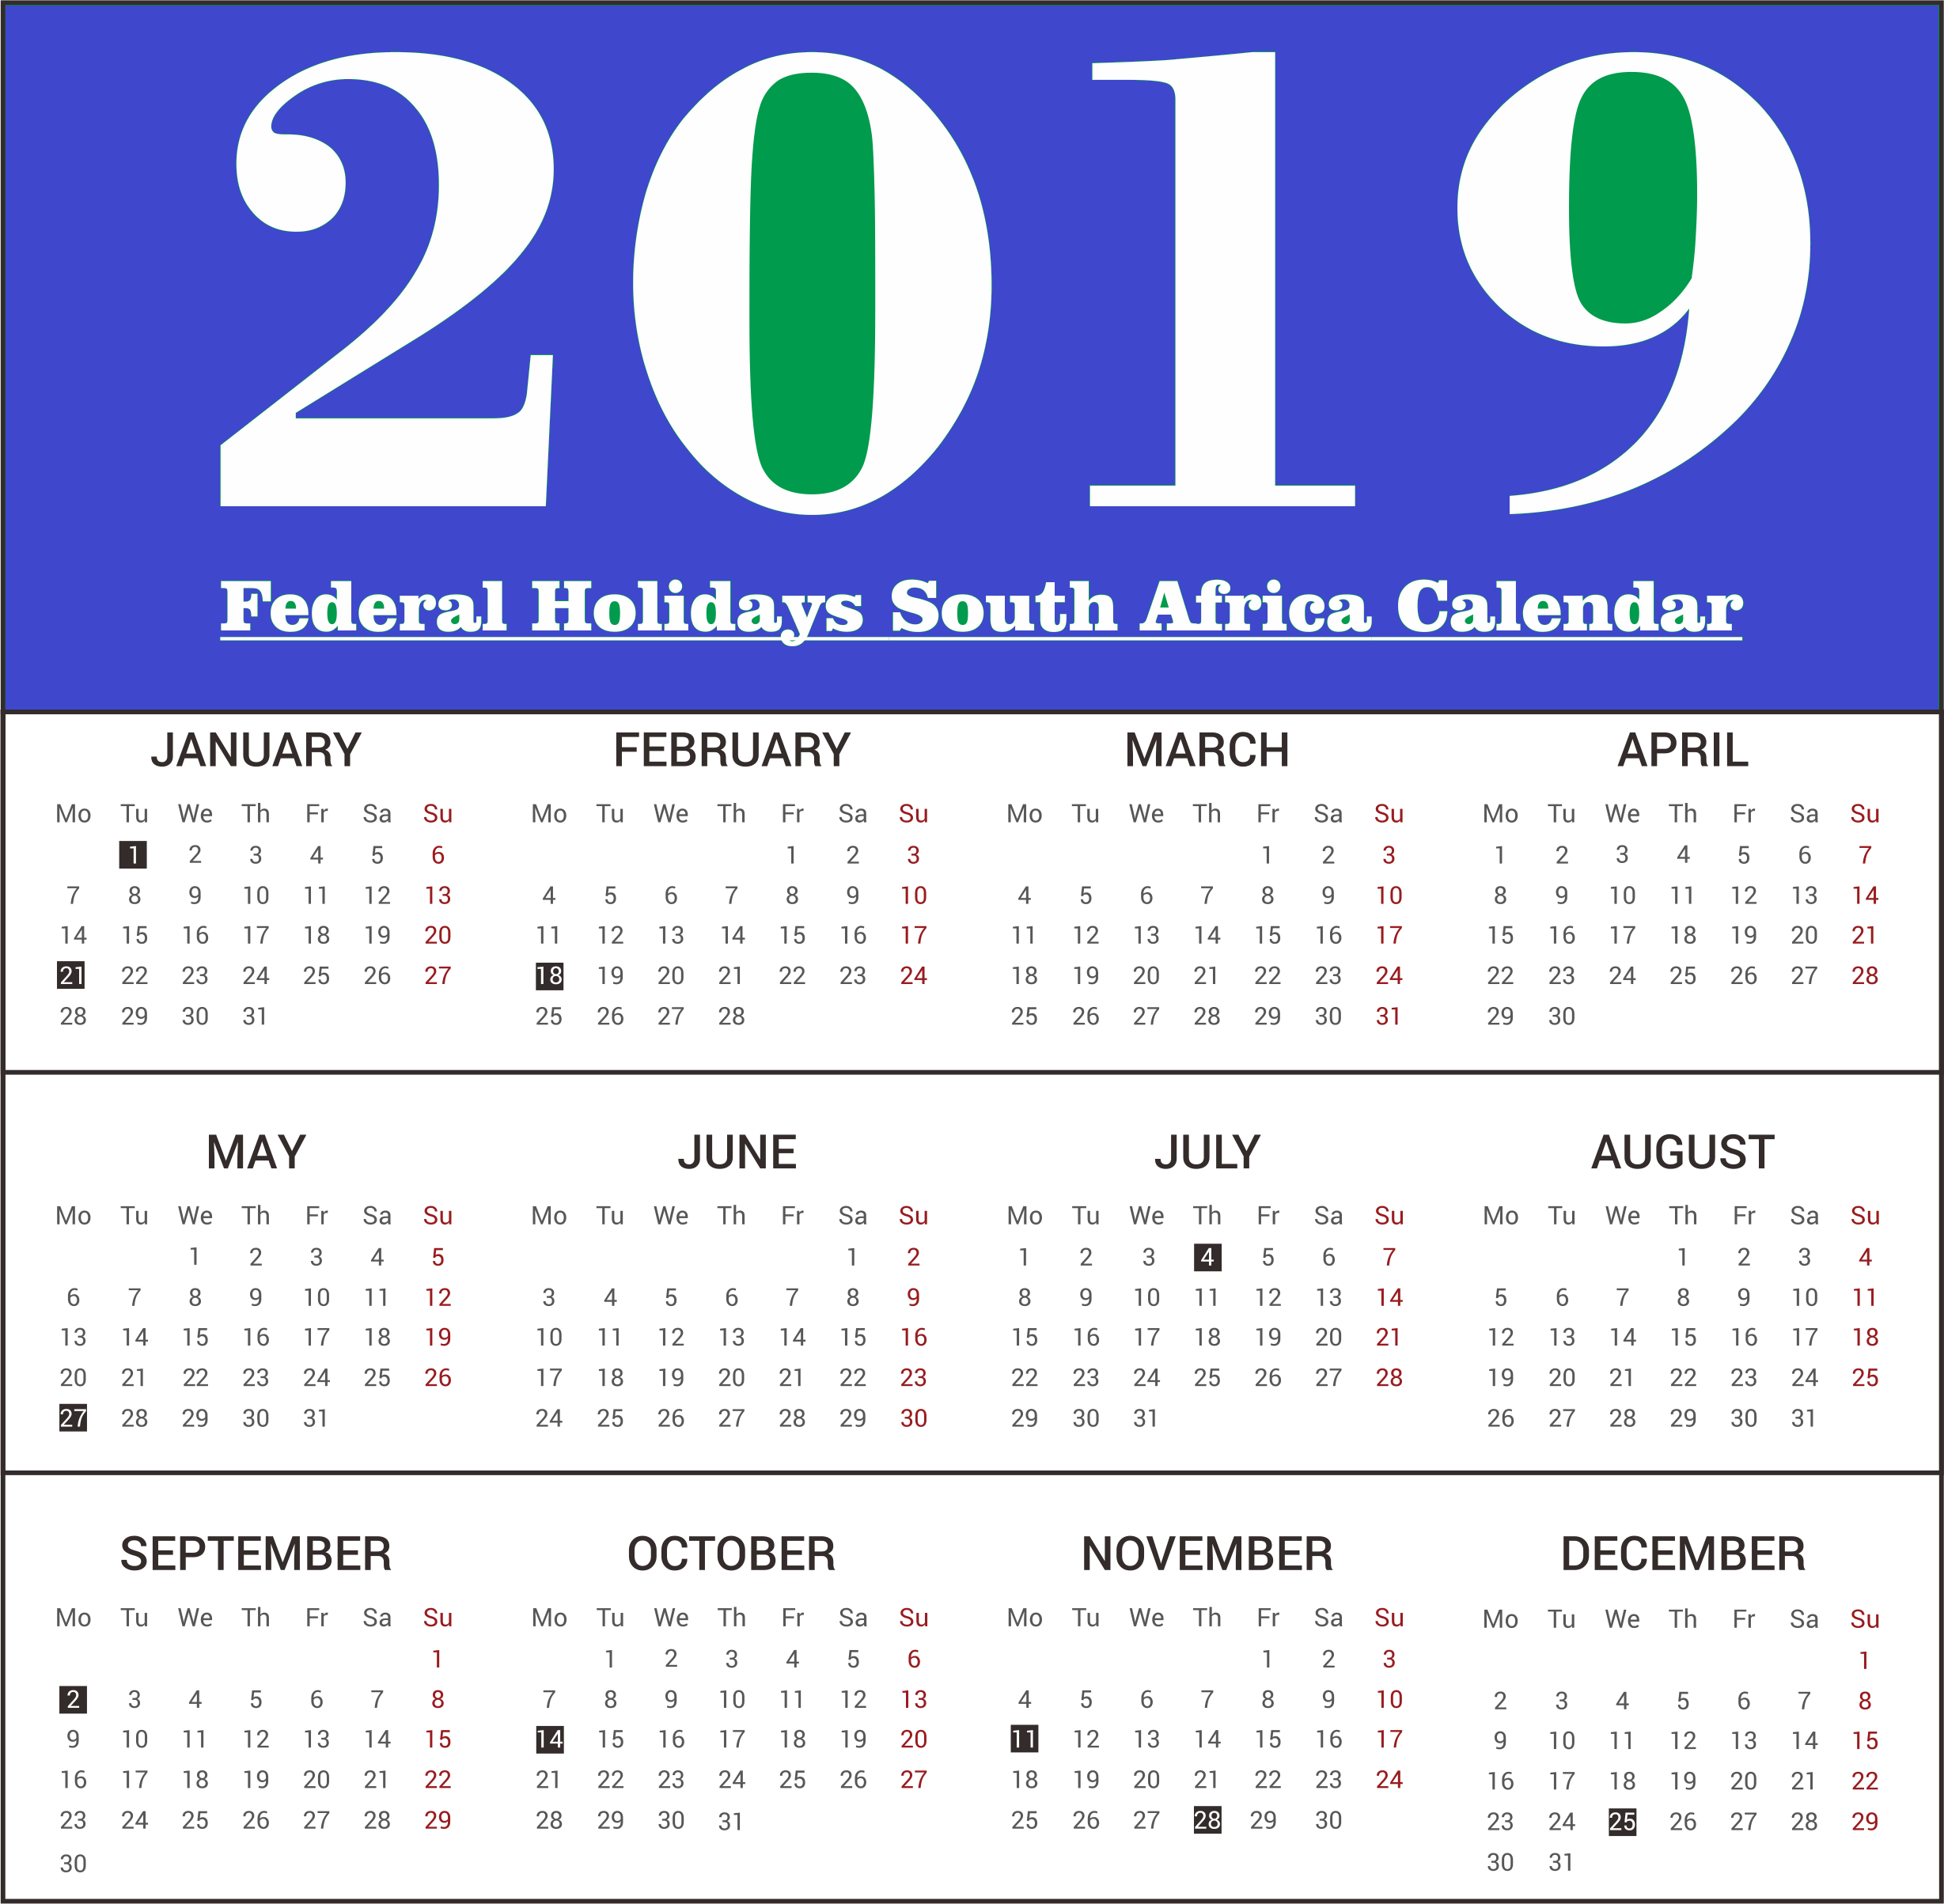 2019 South Africa Federal Holidays Calendar southafrica